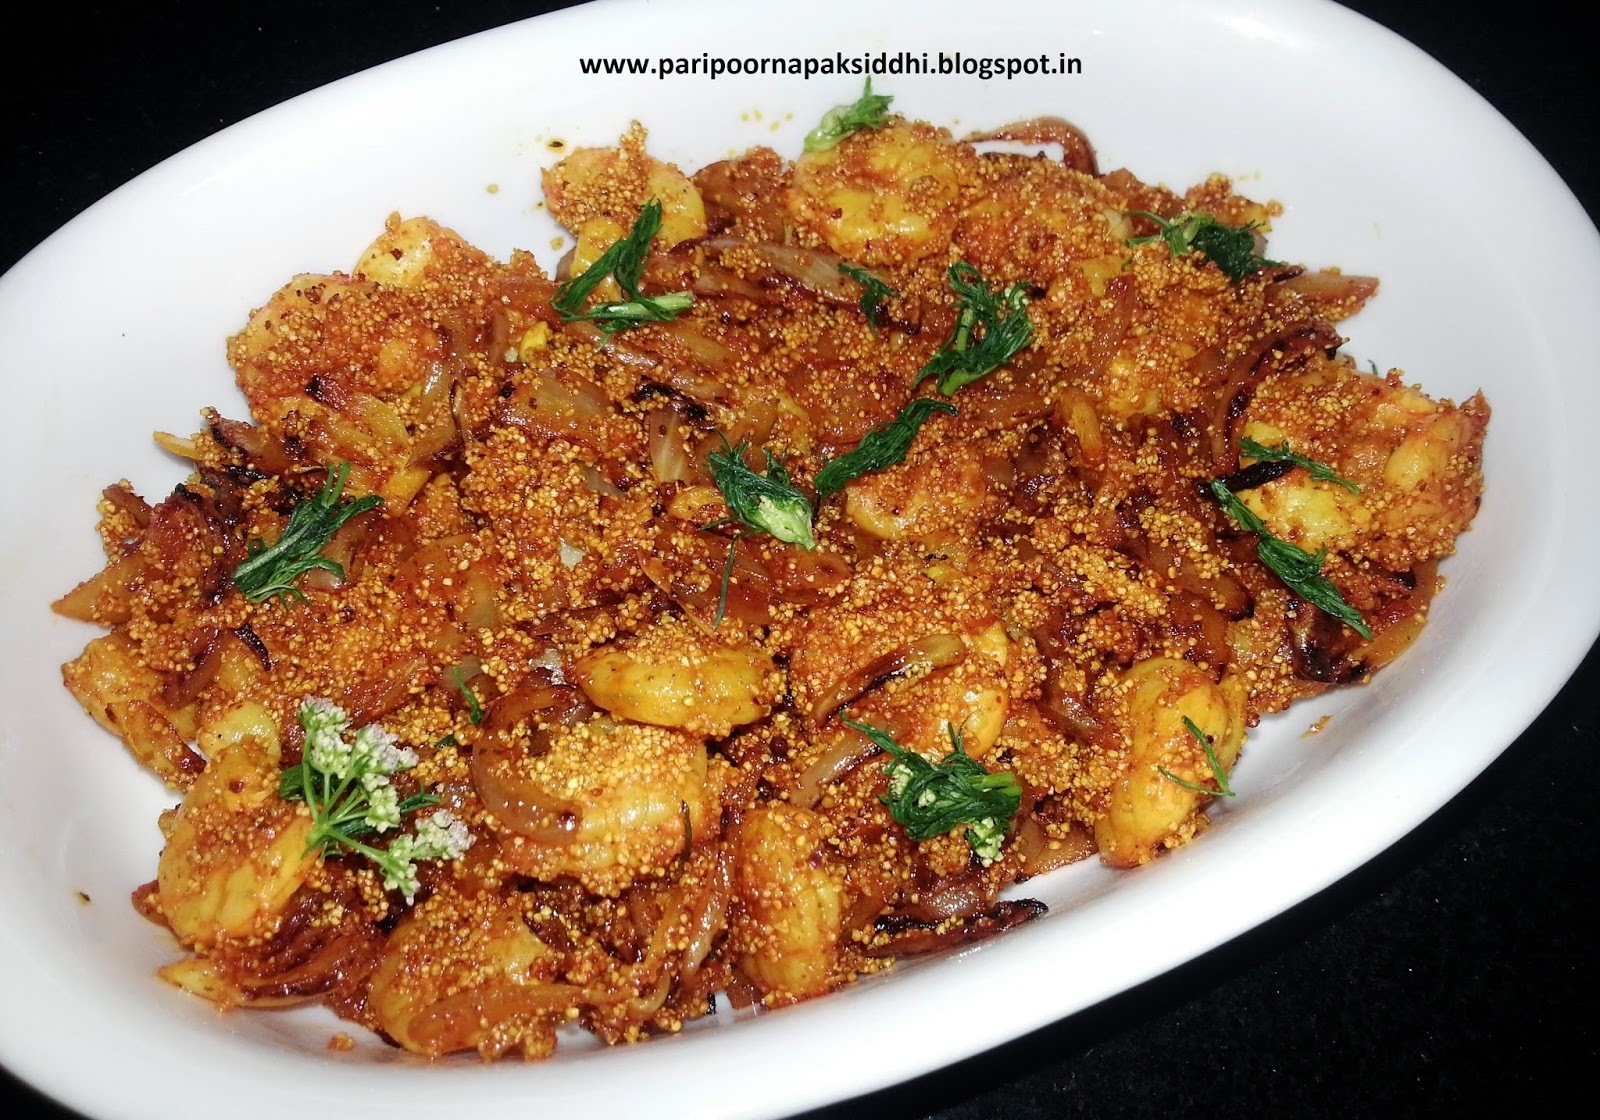 ACHARI JHEENGA / PRAWNS IN PICKLE MASALA